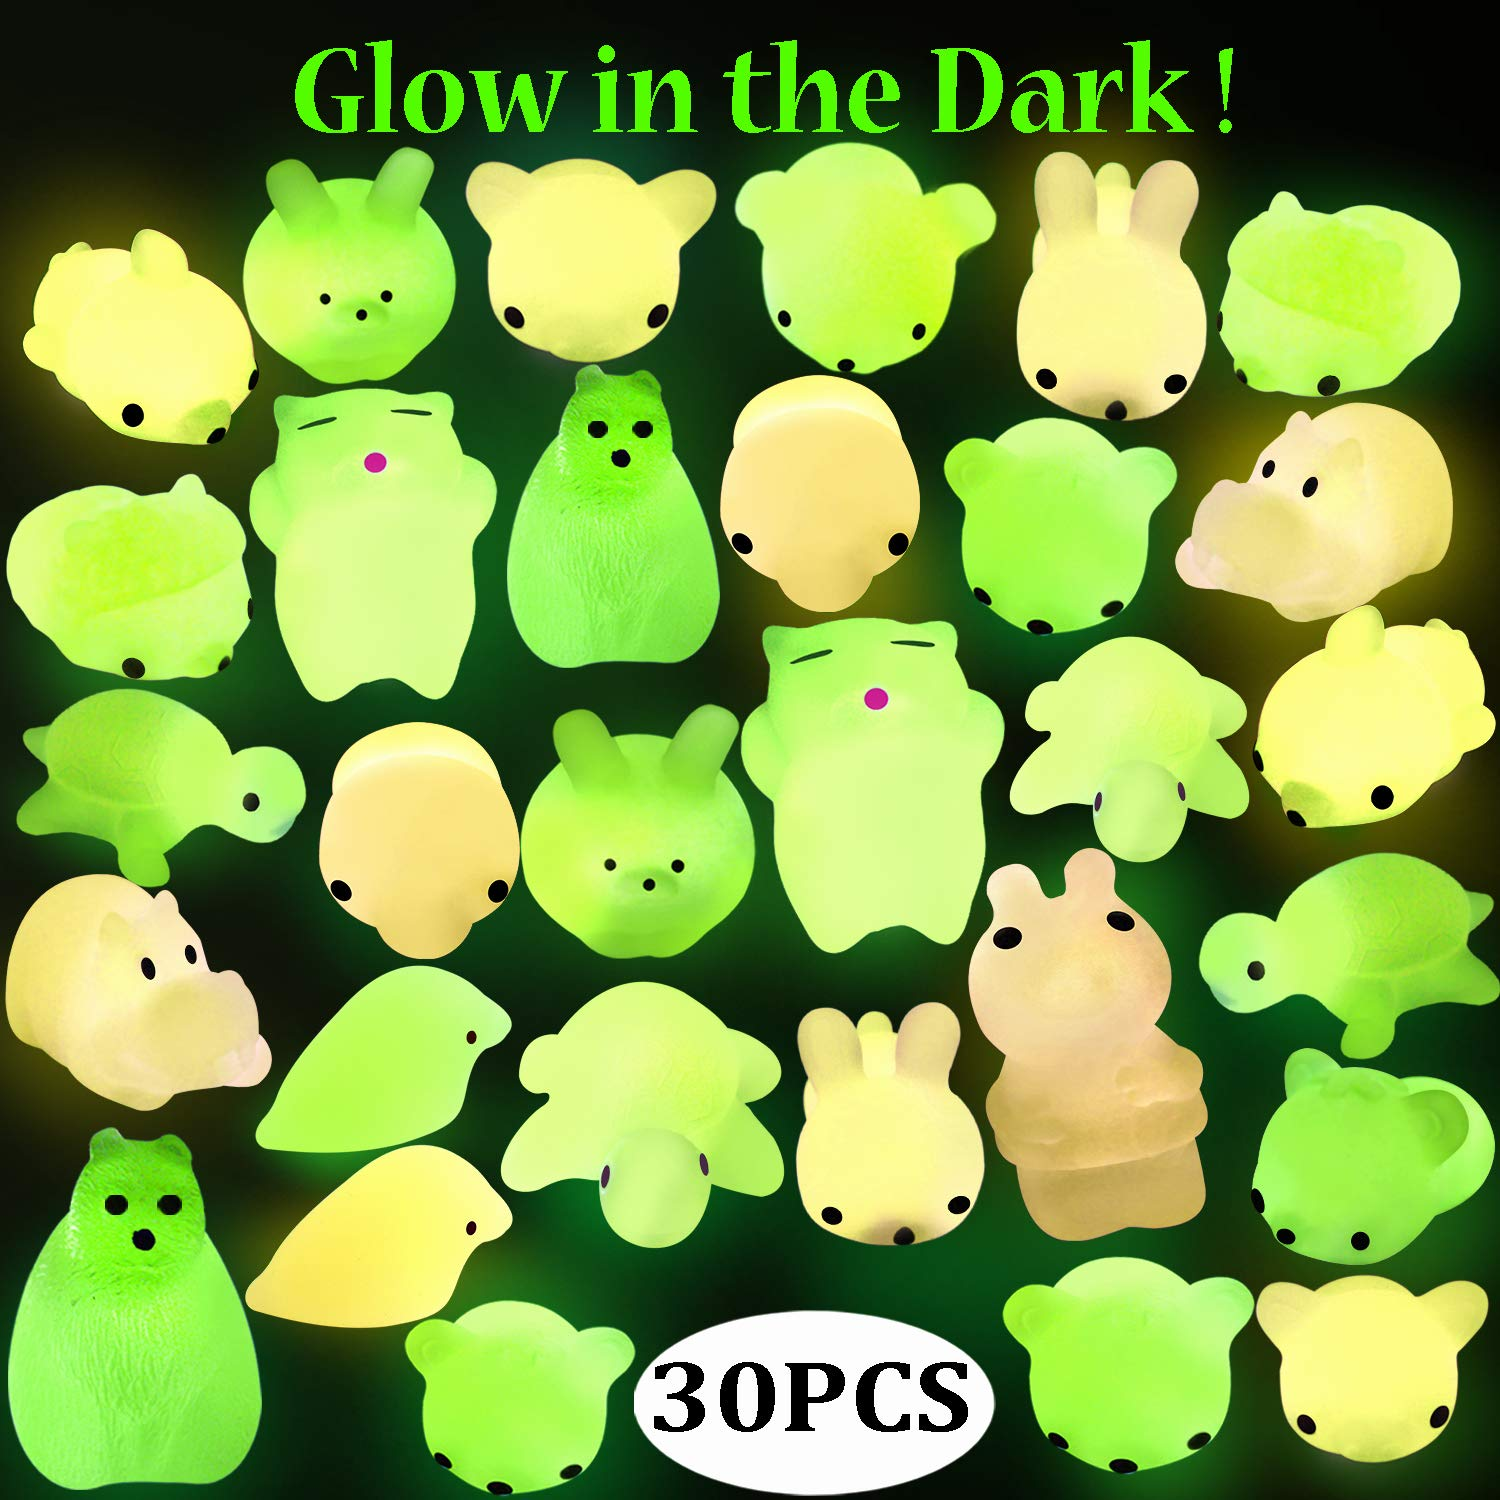 Outee Mochi Animals Stress Toys, 30 Pcs Mini Squishies Mochi Squishies Toys Mochi Cat Glow in The Dark Squishies Squeeze Relief Stress Toys for Kids Adults by Outee